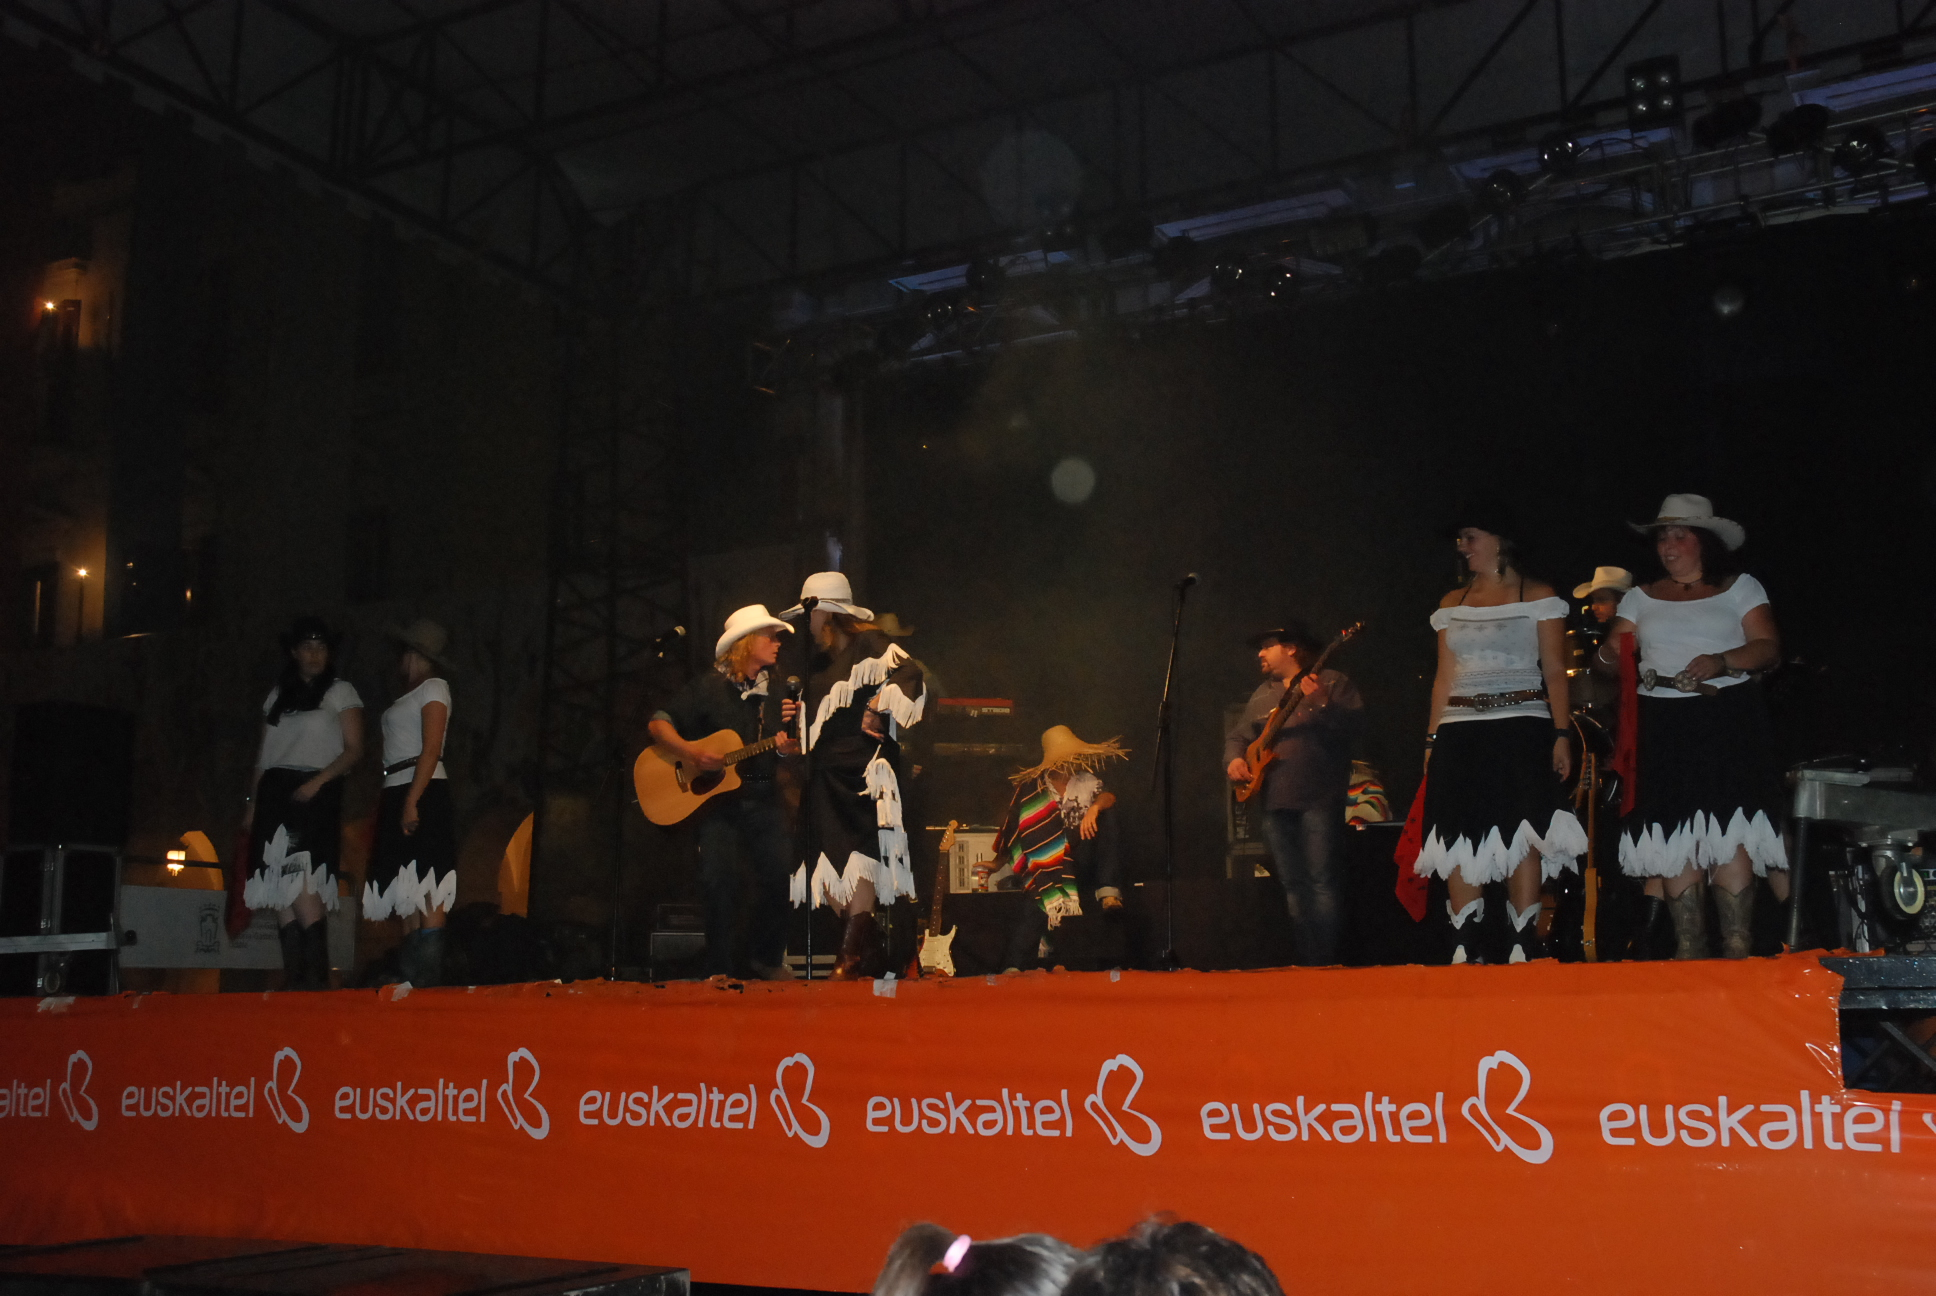 Dancing on Stage